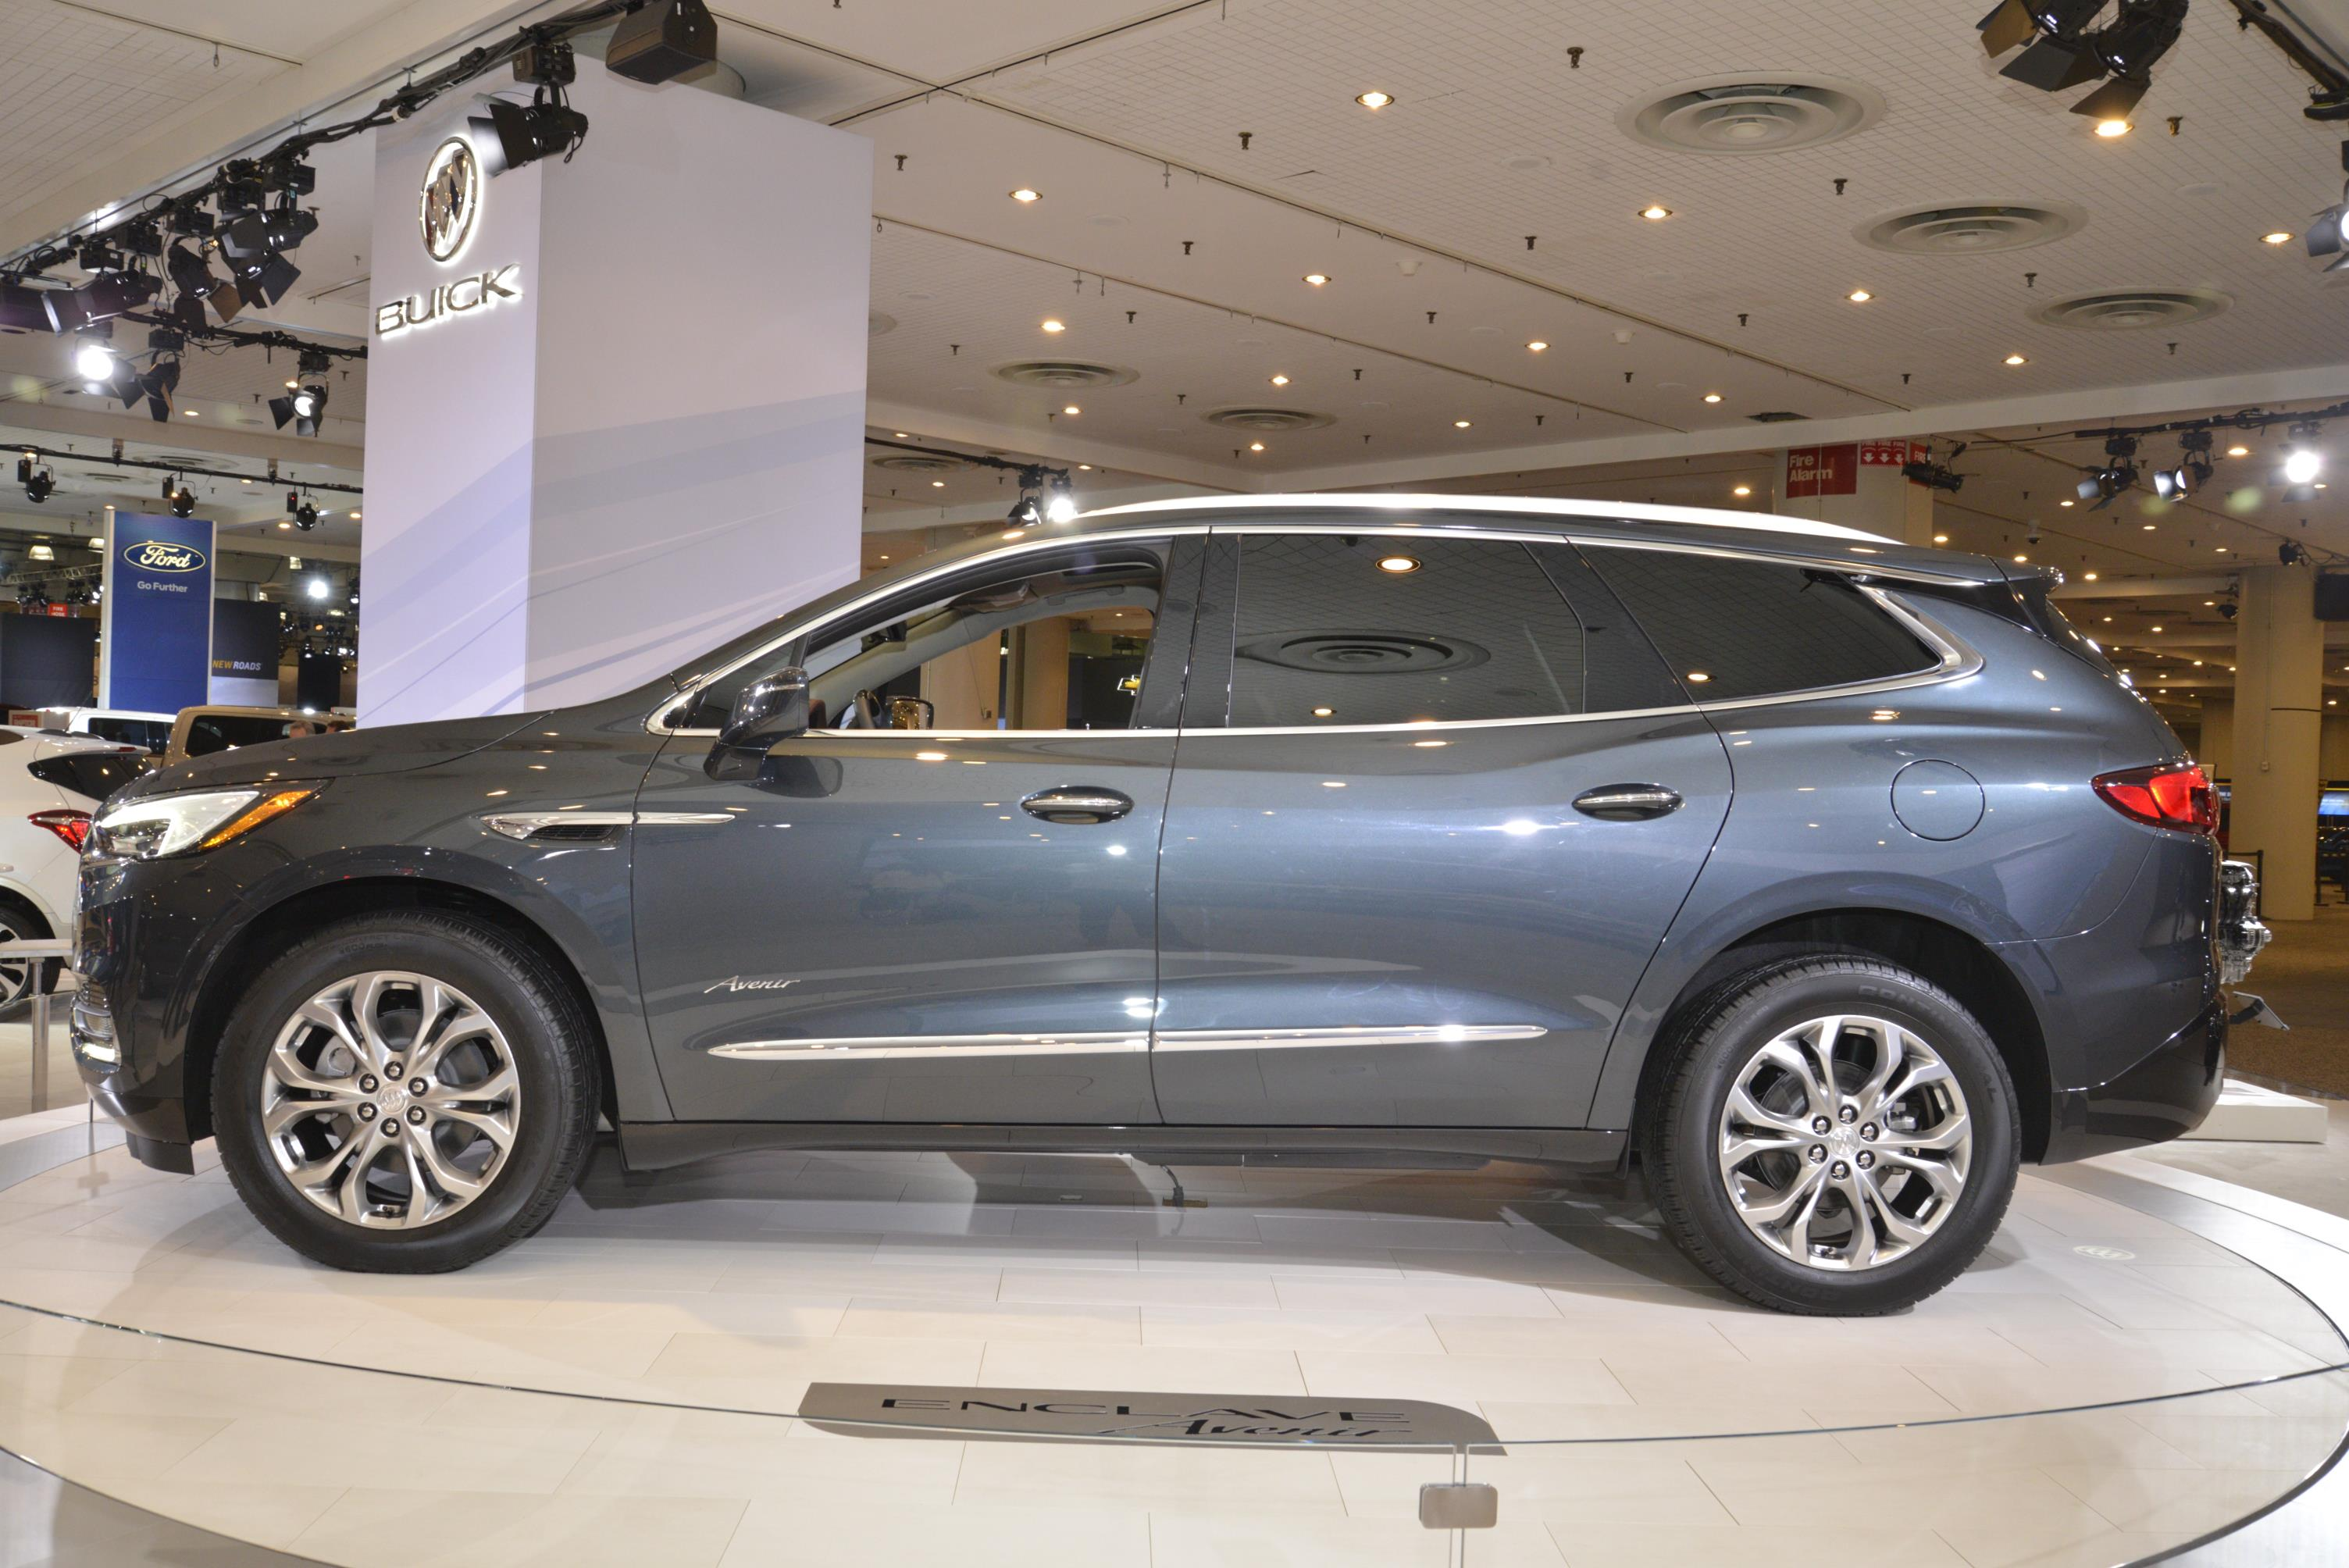 enclave seat buick car vehicles suv tether anchors enclaves row the lady